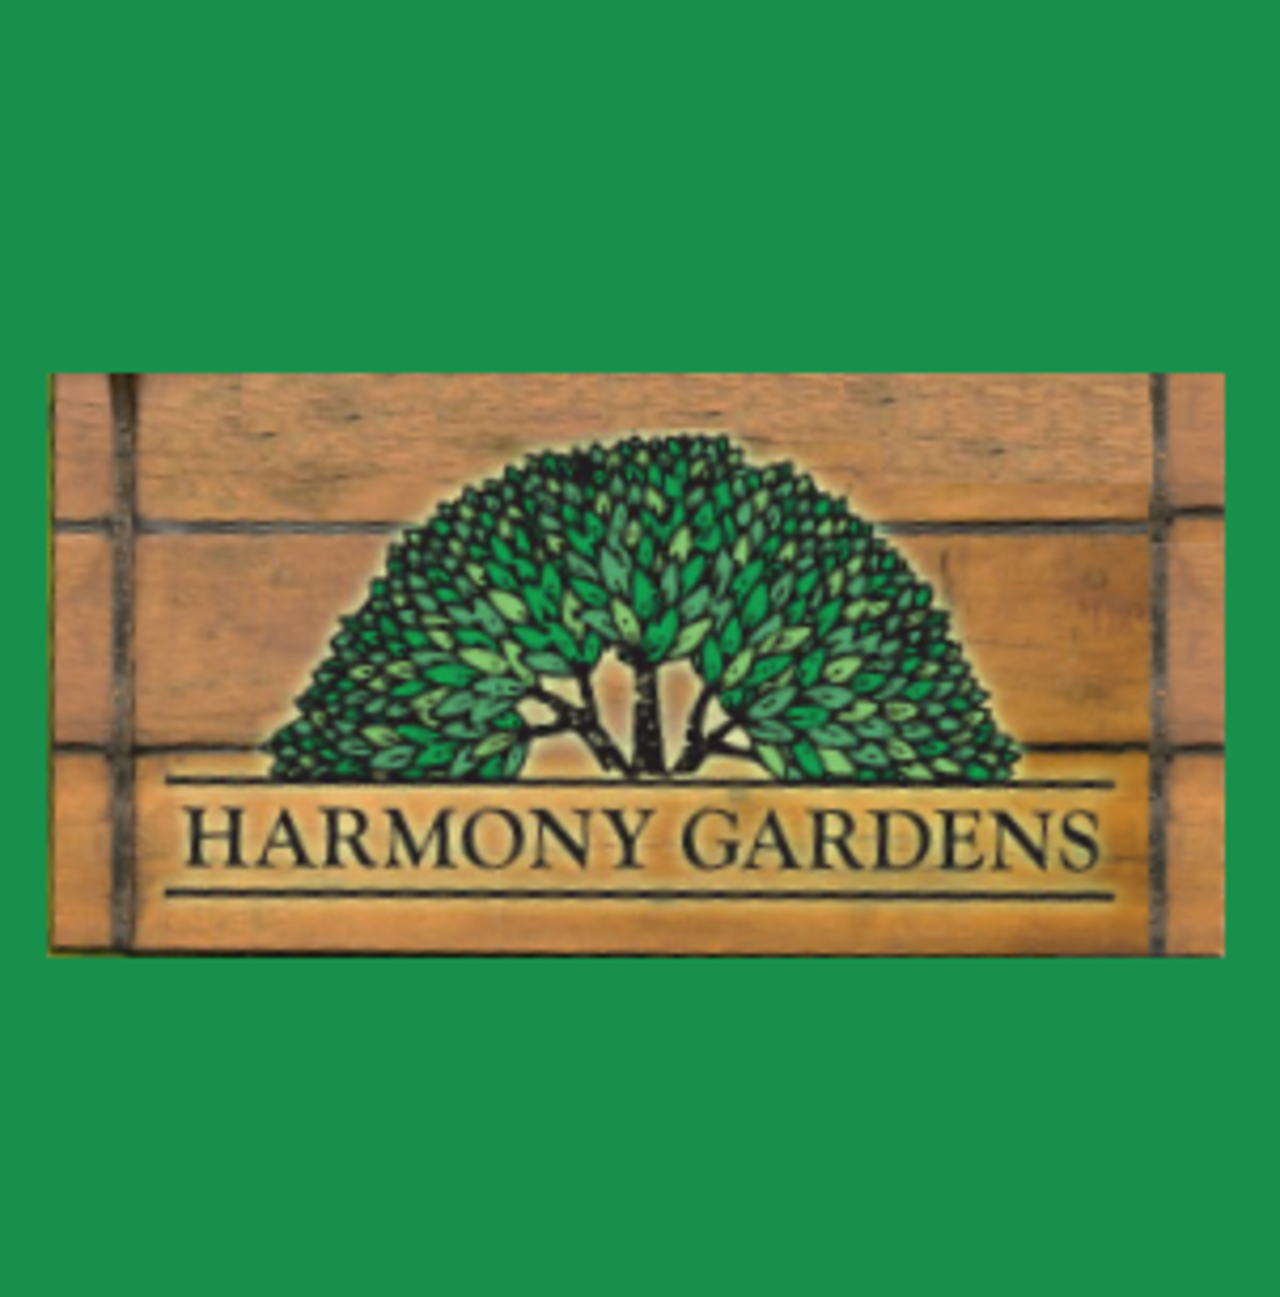 Harmony Gardens - Shopping - Agriculture Production in Fort Collins CO